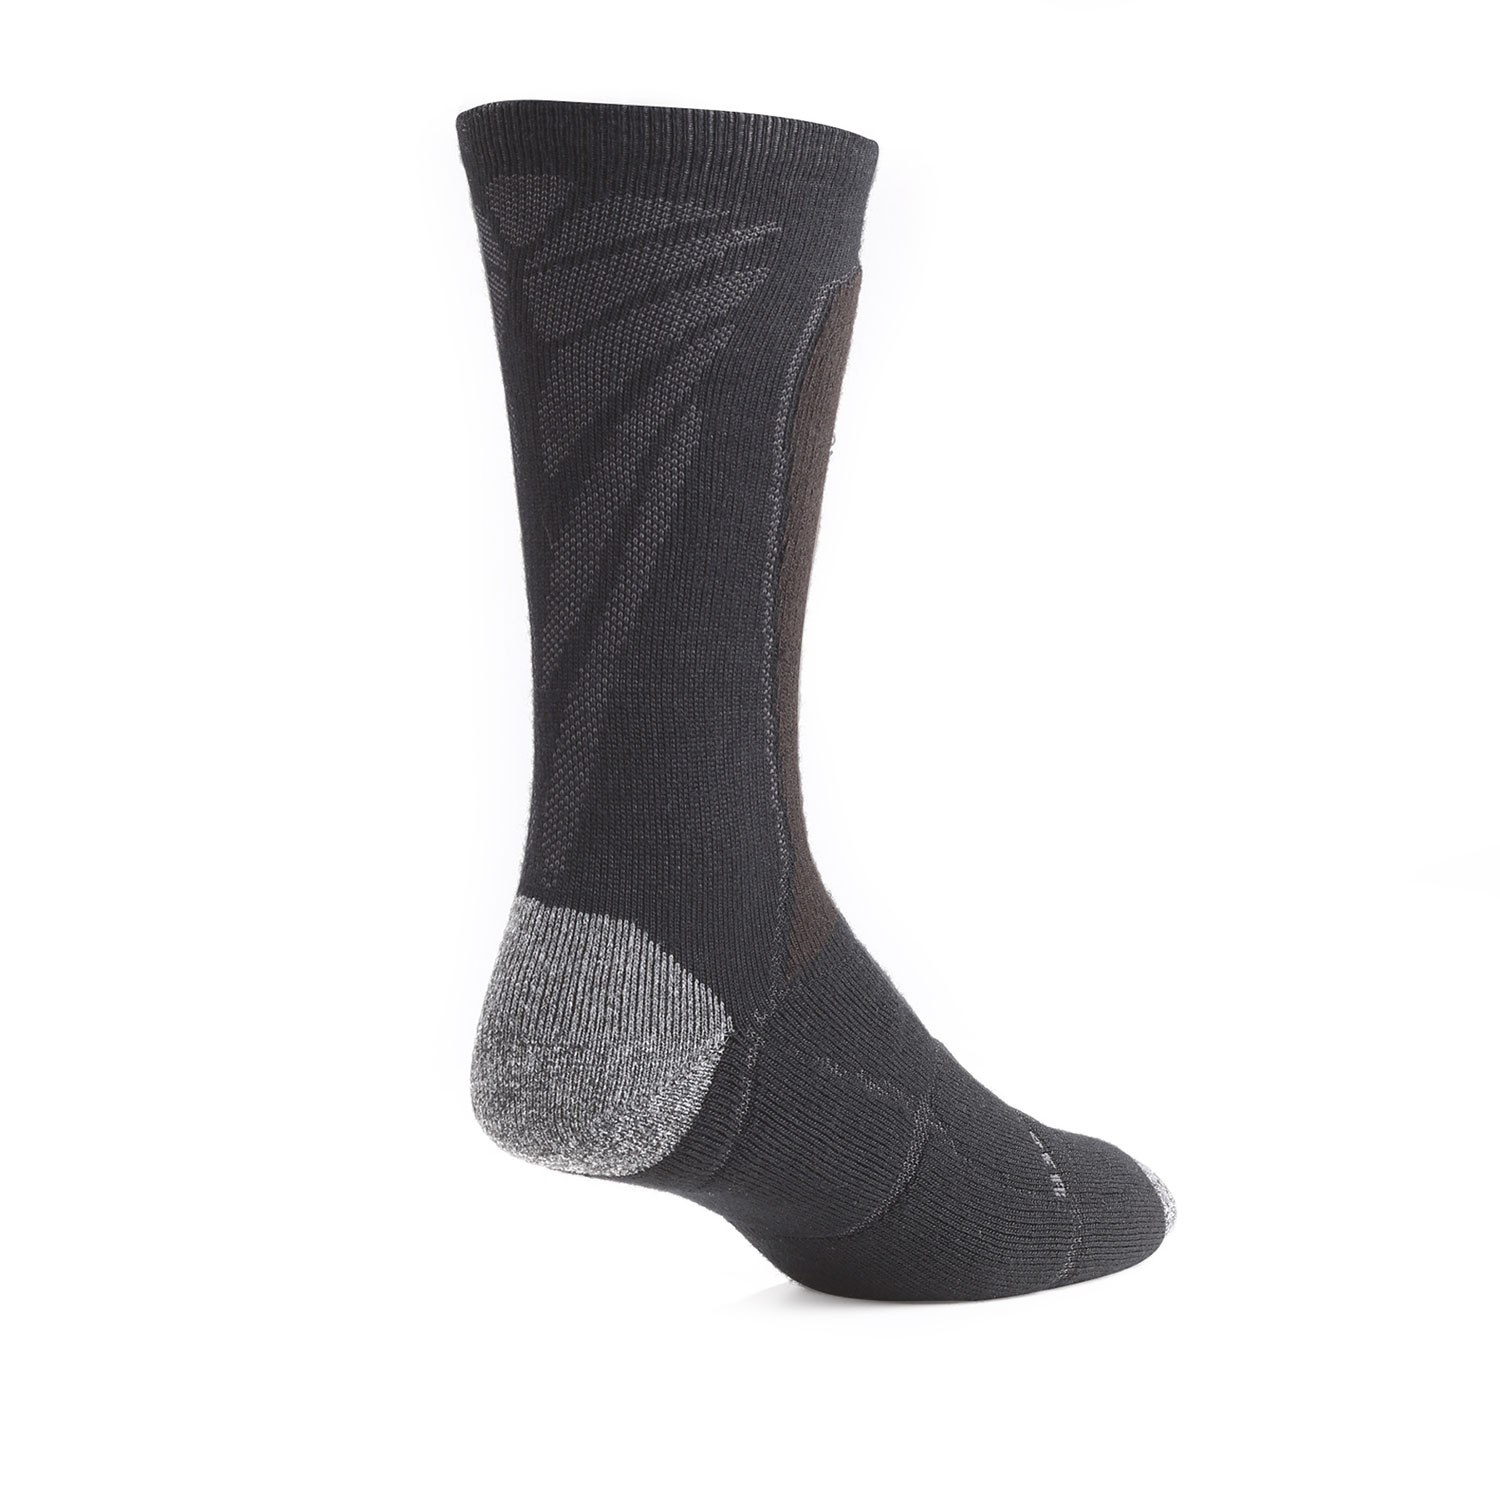 Tommie Copper Compression Wool Crew Sock